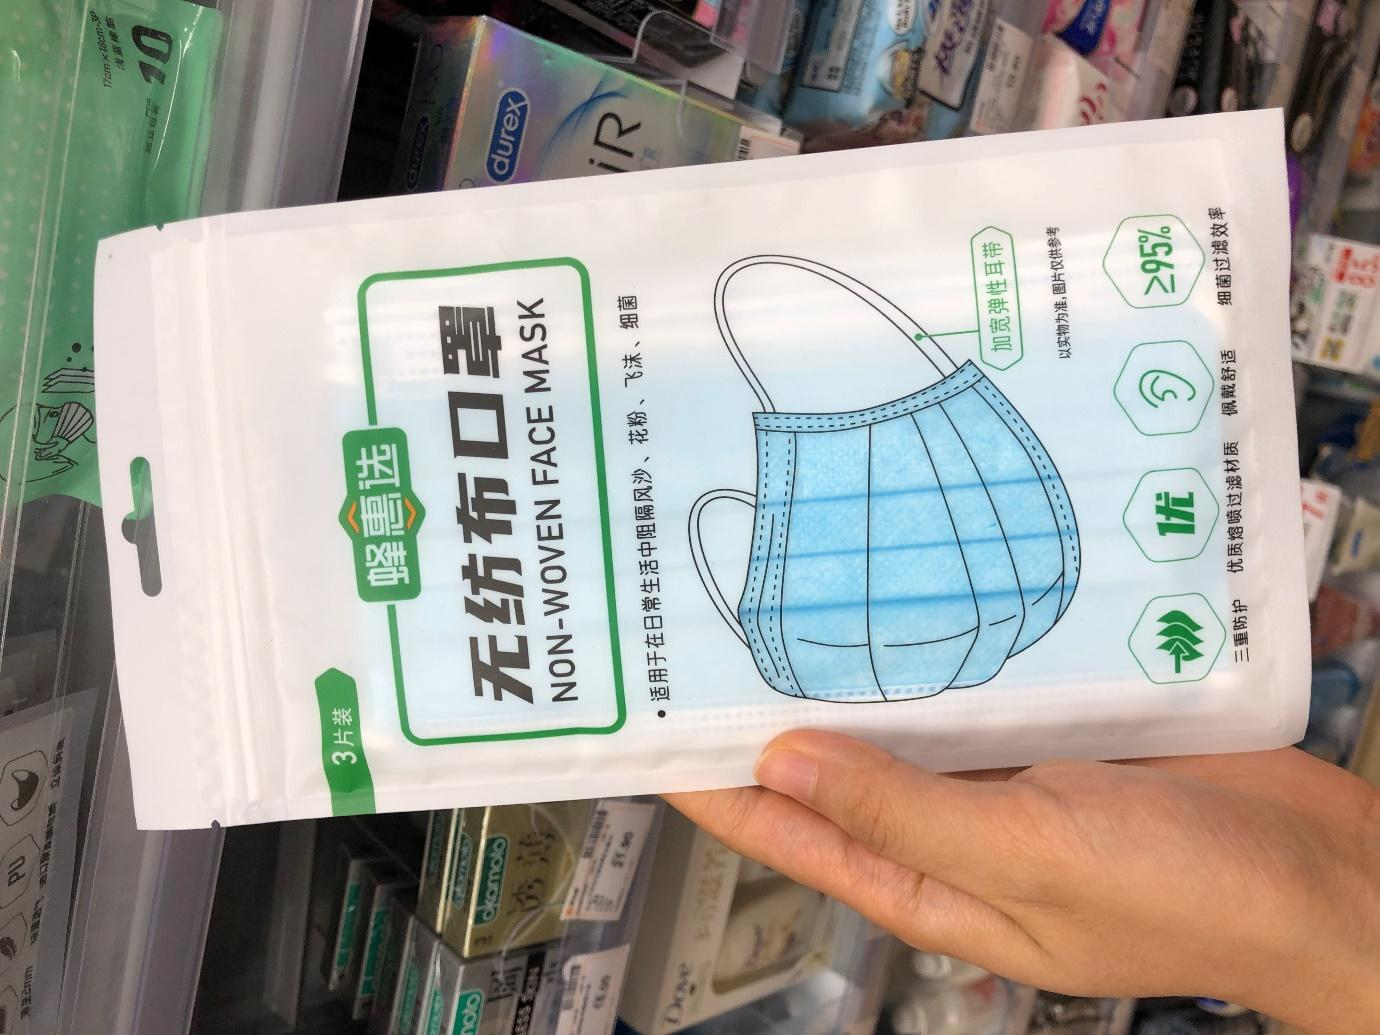 Buying Surgical Masks from a convenience store